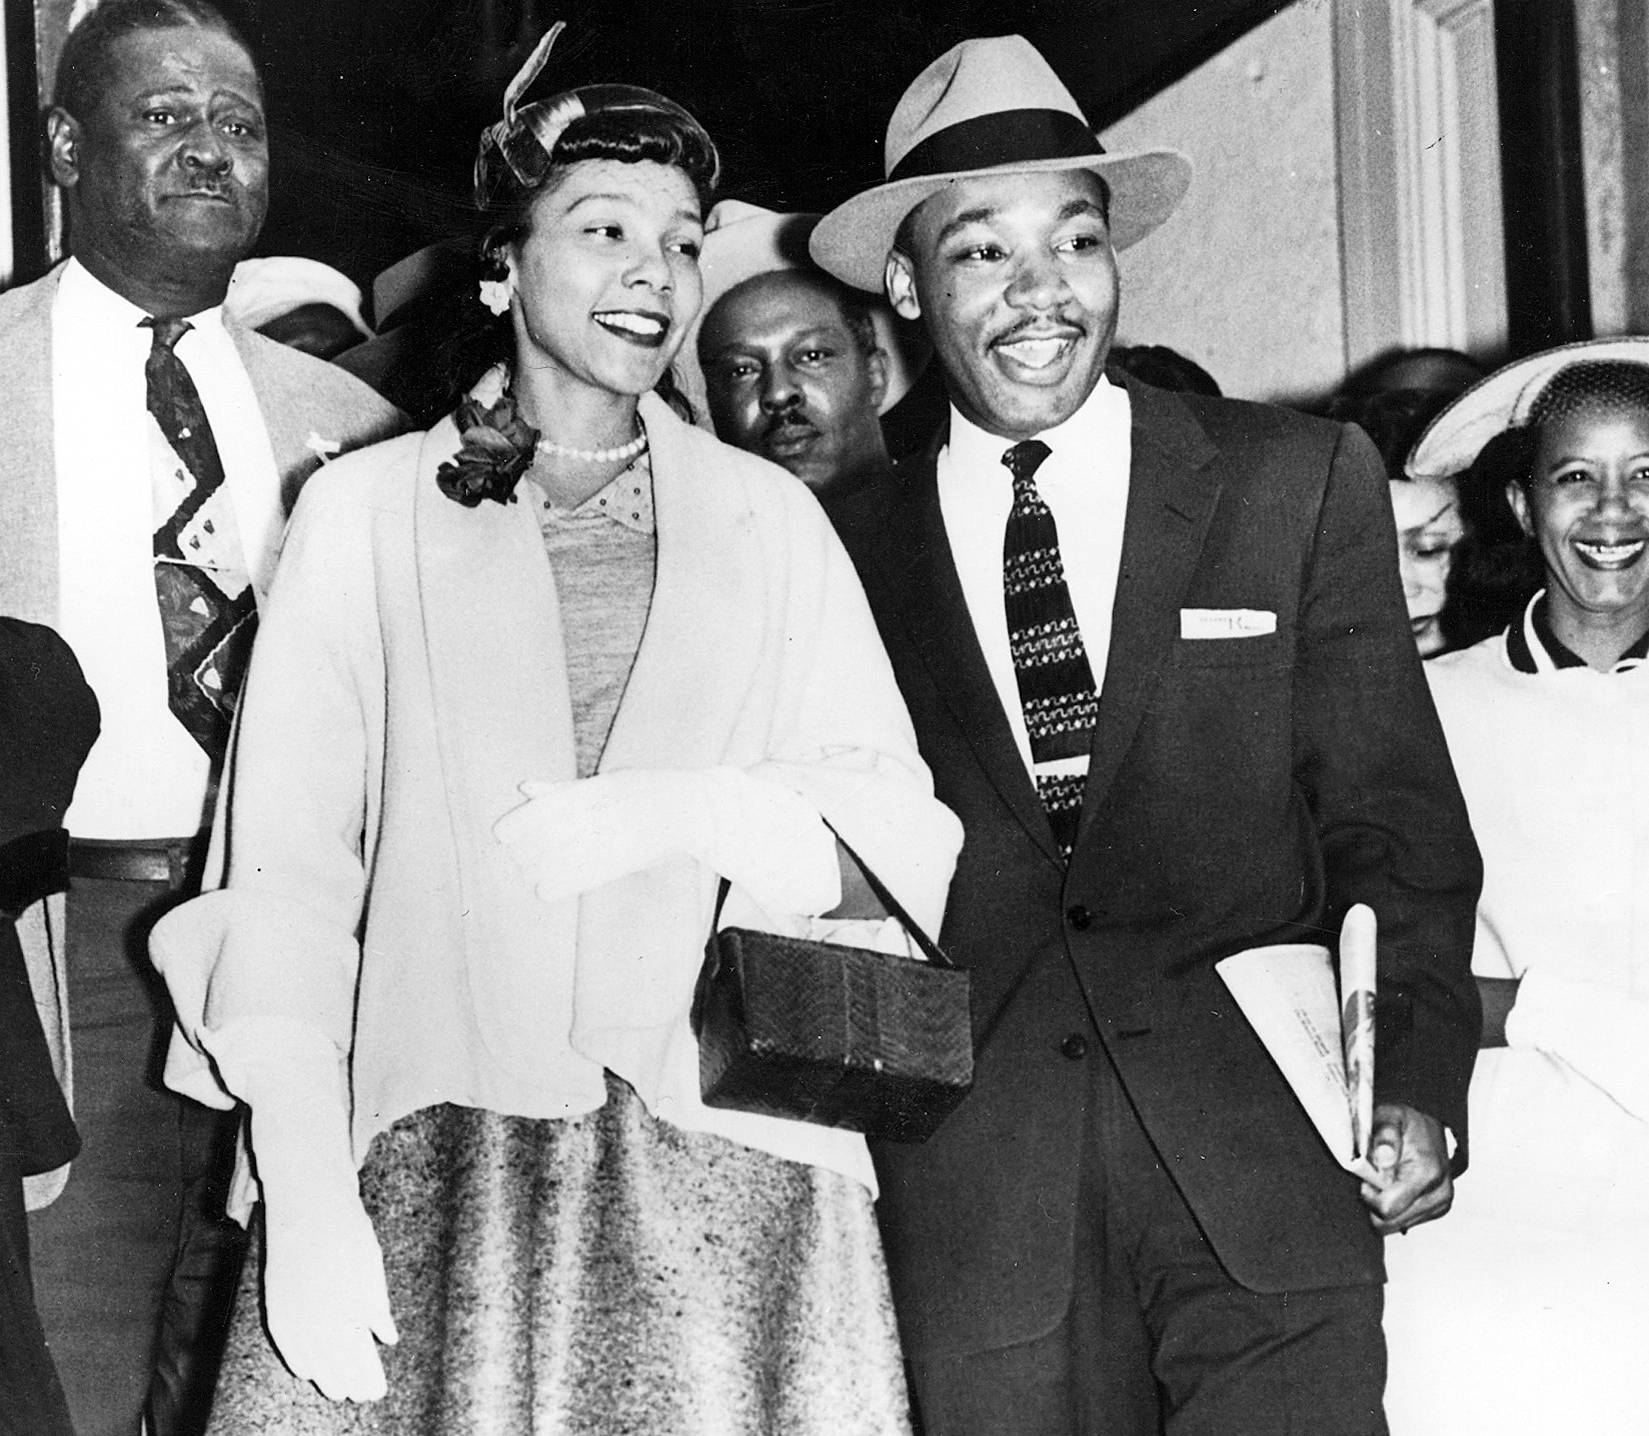 Martin Luther King Jr. and Coretta Scott King - Martin Luther King Jr. and Coretta Scott King. (Photo: AFP/AFP/Getty Images)